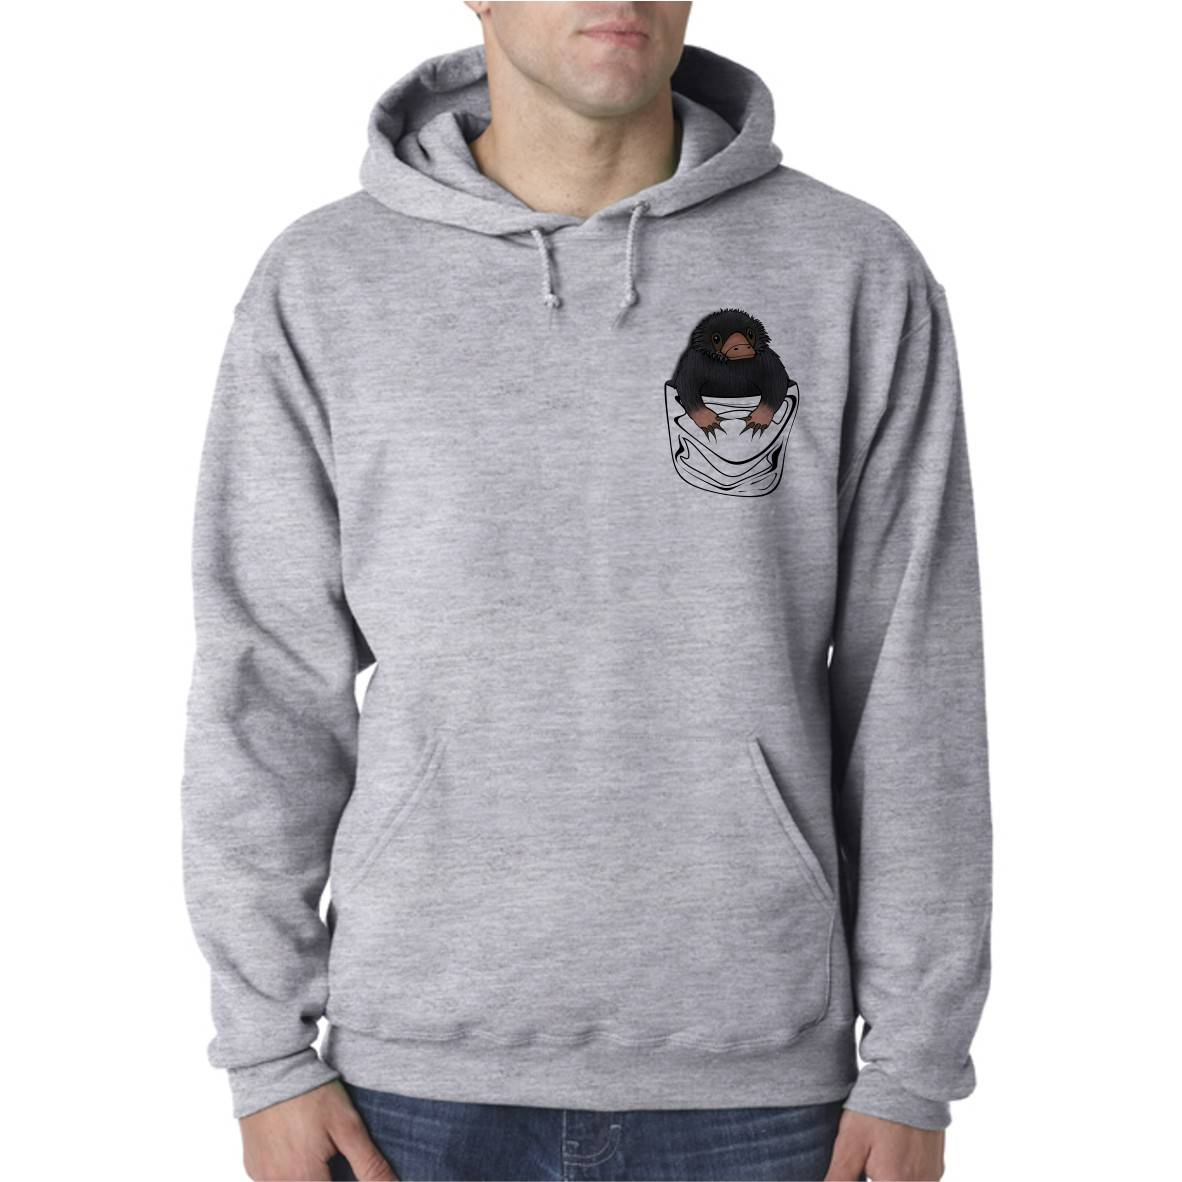 NIFFLER UNISEX HOODED